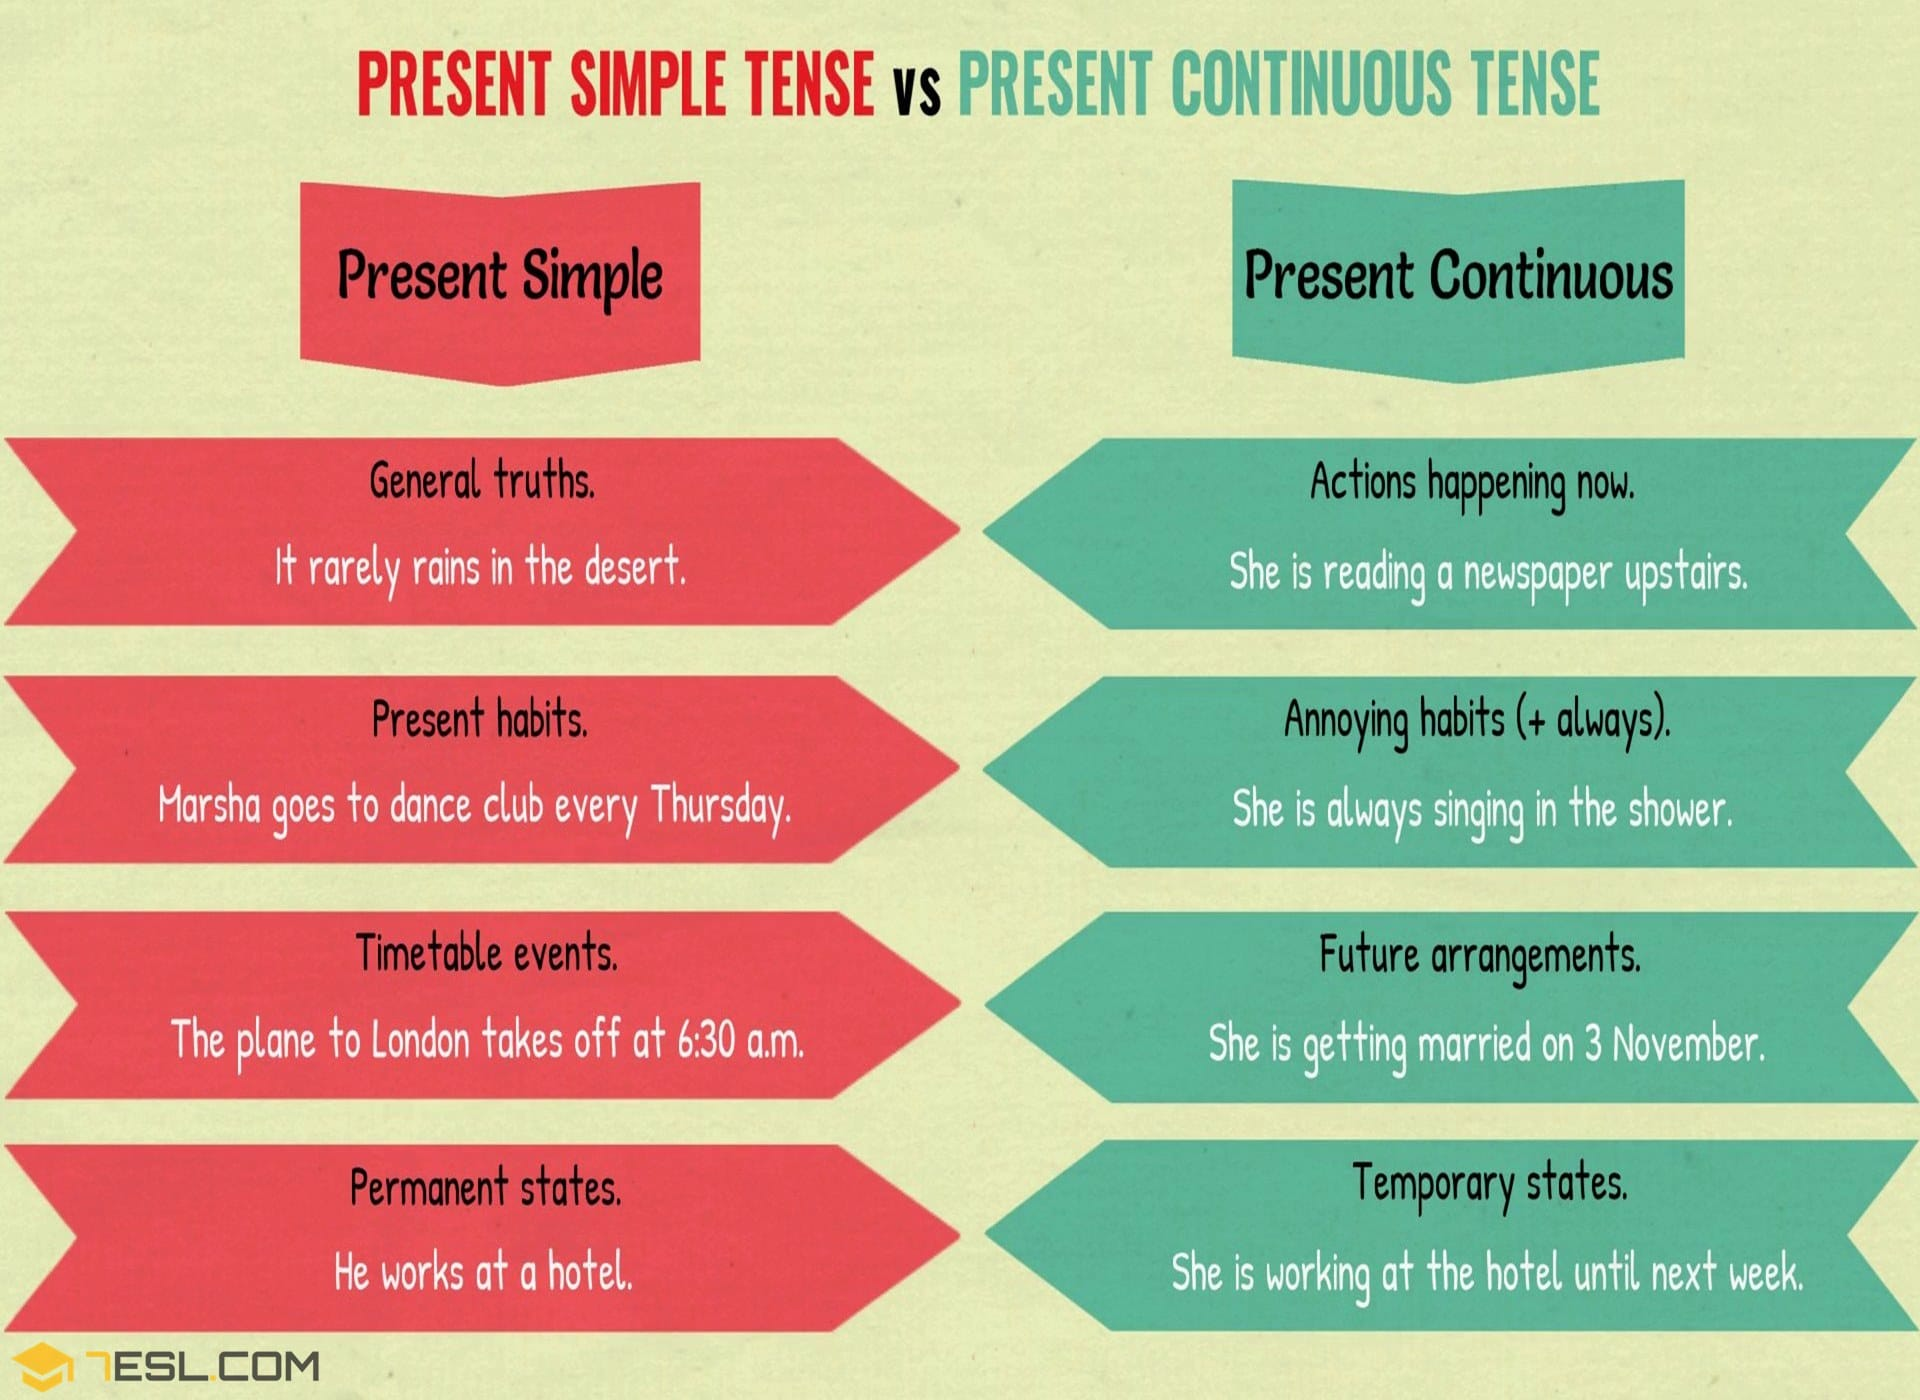 PRESENT-SIMPLE-TENSE-VS-PRESENT-CONTINUOUS-TENSE-crop